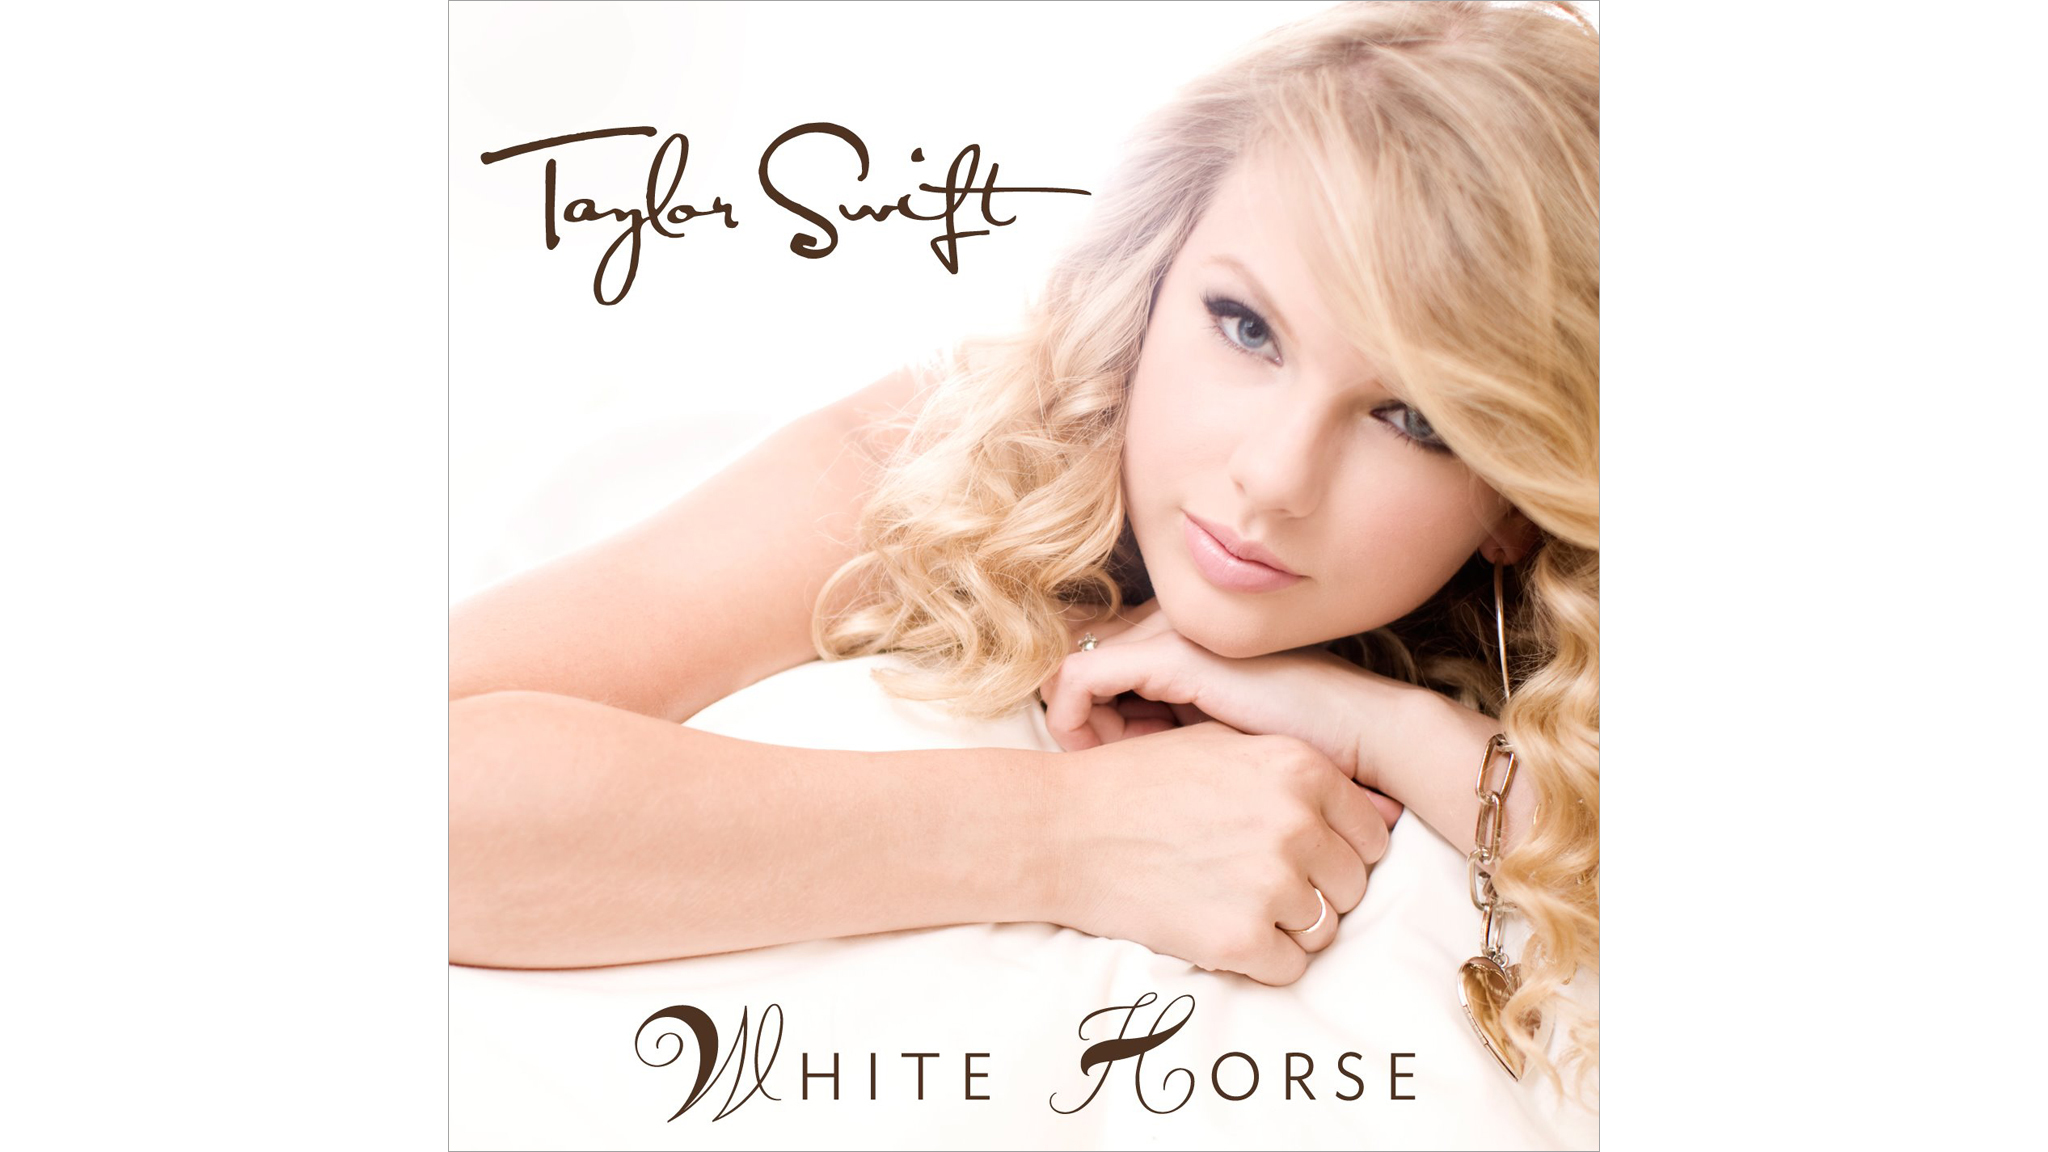 white horse, taylor swift